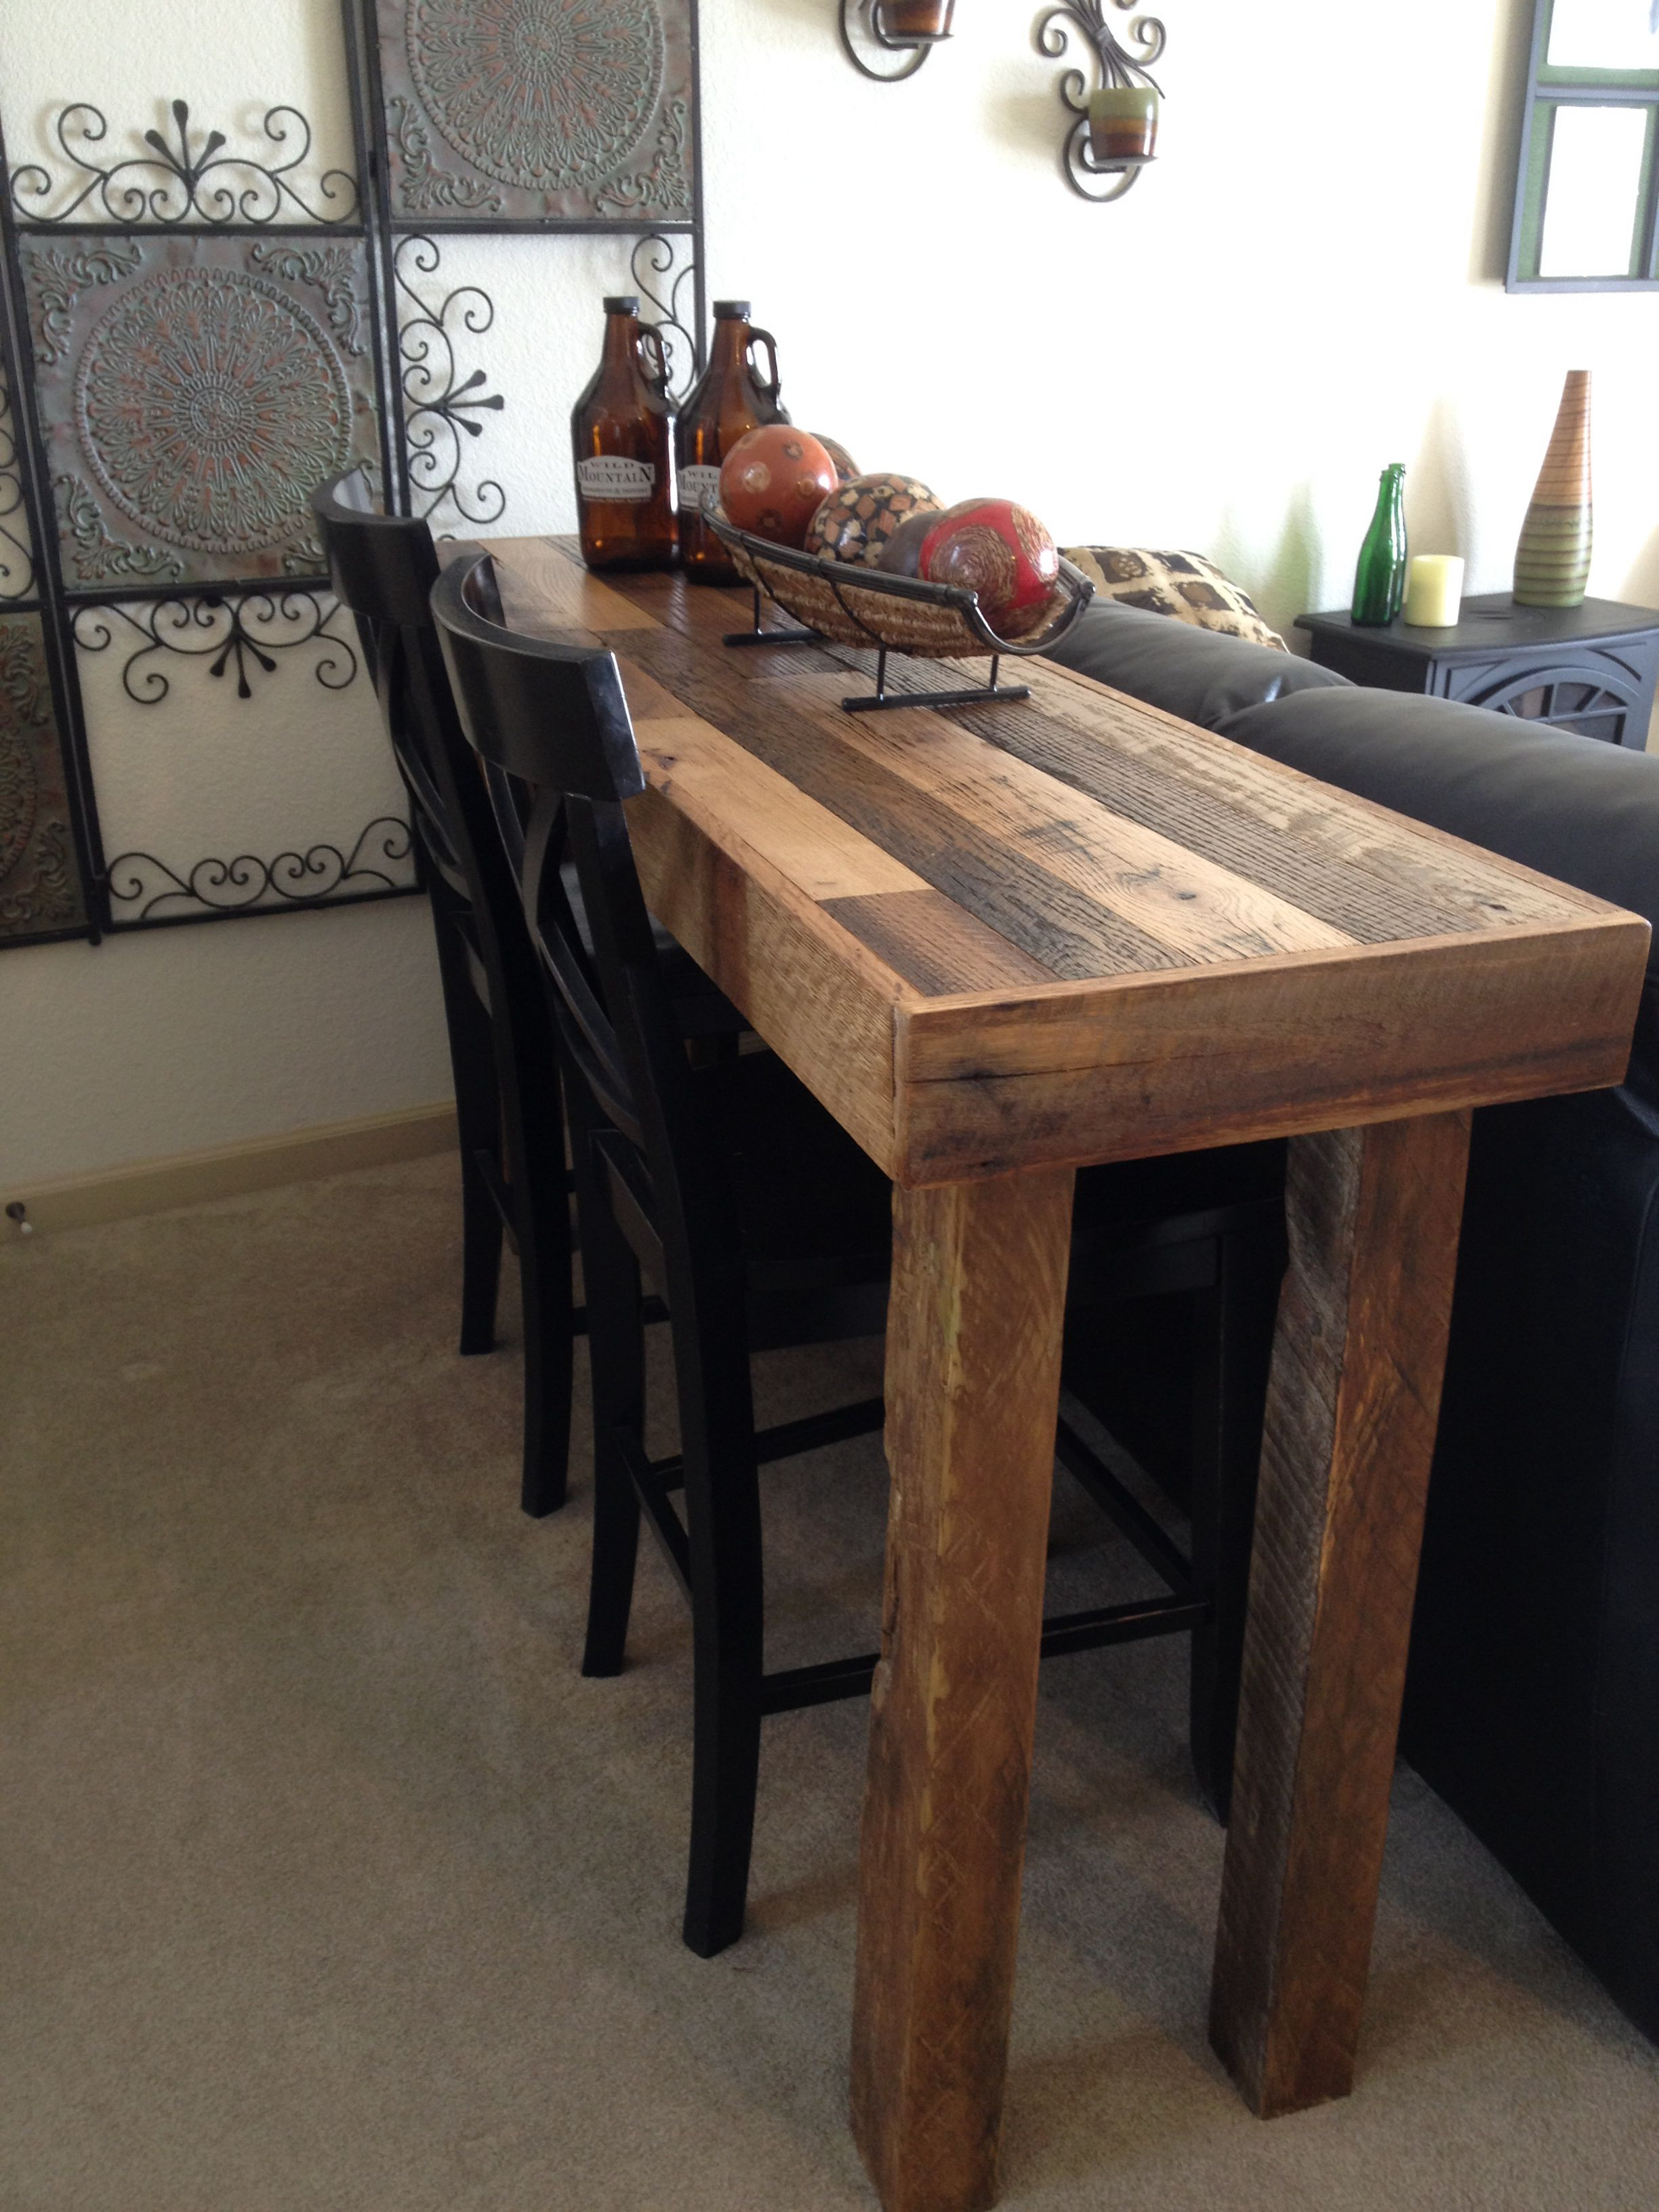 A Table I Made From Leftover Tongue And Groove Flooring